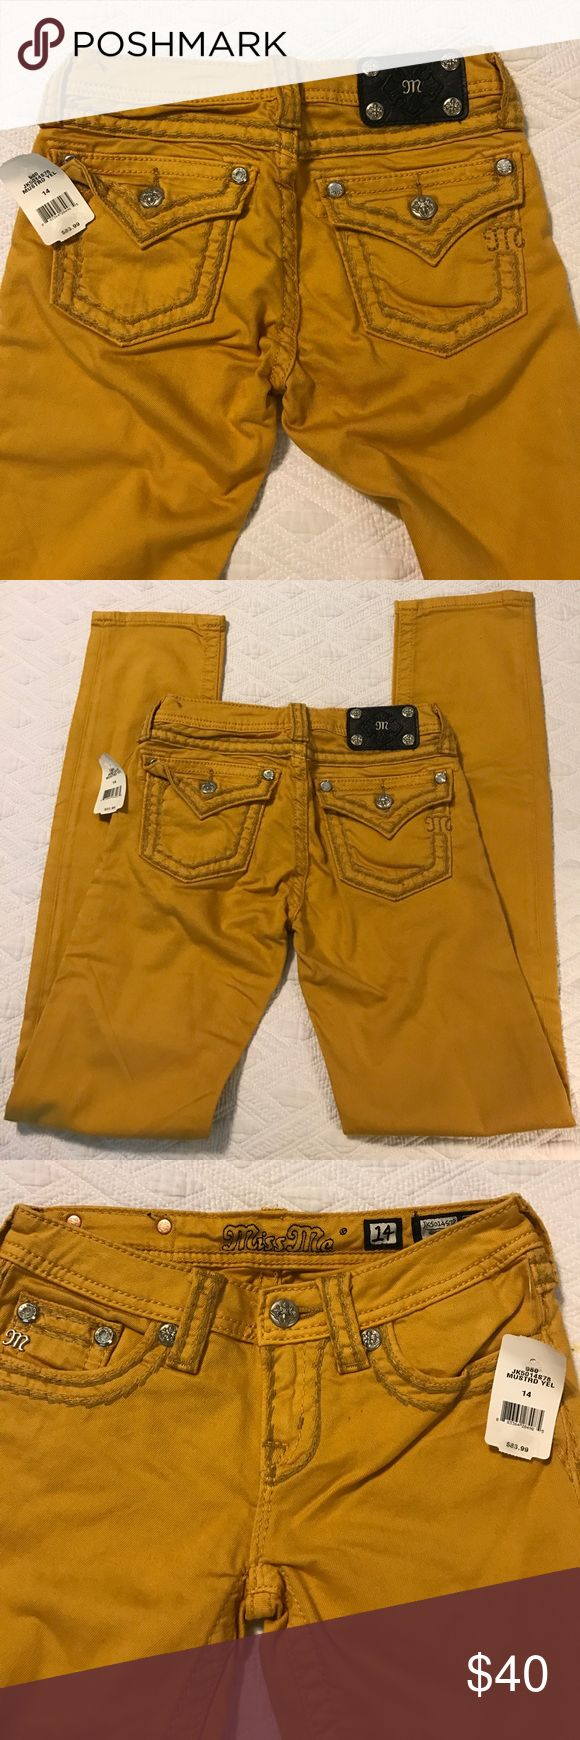 NWT Miss Me Mustard Yellow Skinny Jeans NWT Miss Me Mustard Yellow Skinny Jeans.  Inseam is approximately 30 inches.  Button closure on both back pockets.  Size 14. Miss Me Bottoms Jeans